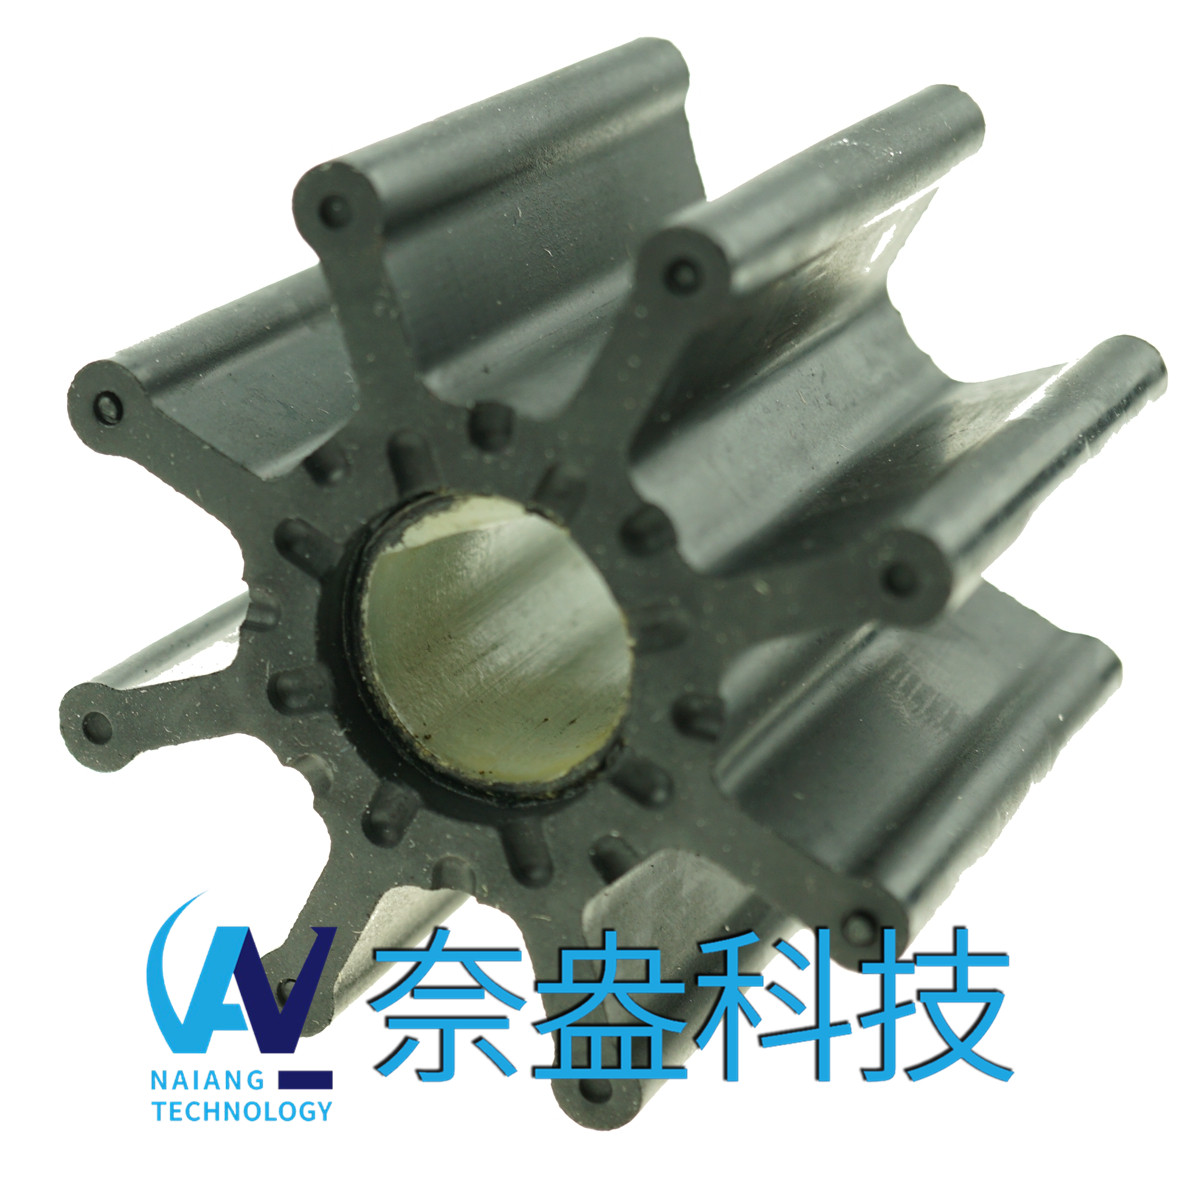 水星舷外機橡膠葉輪 Mercury Impeller 47-59362T1